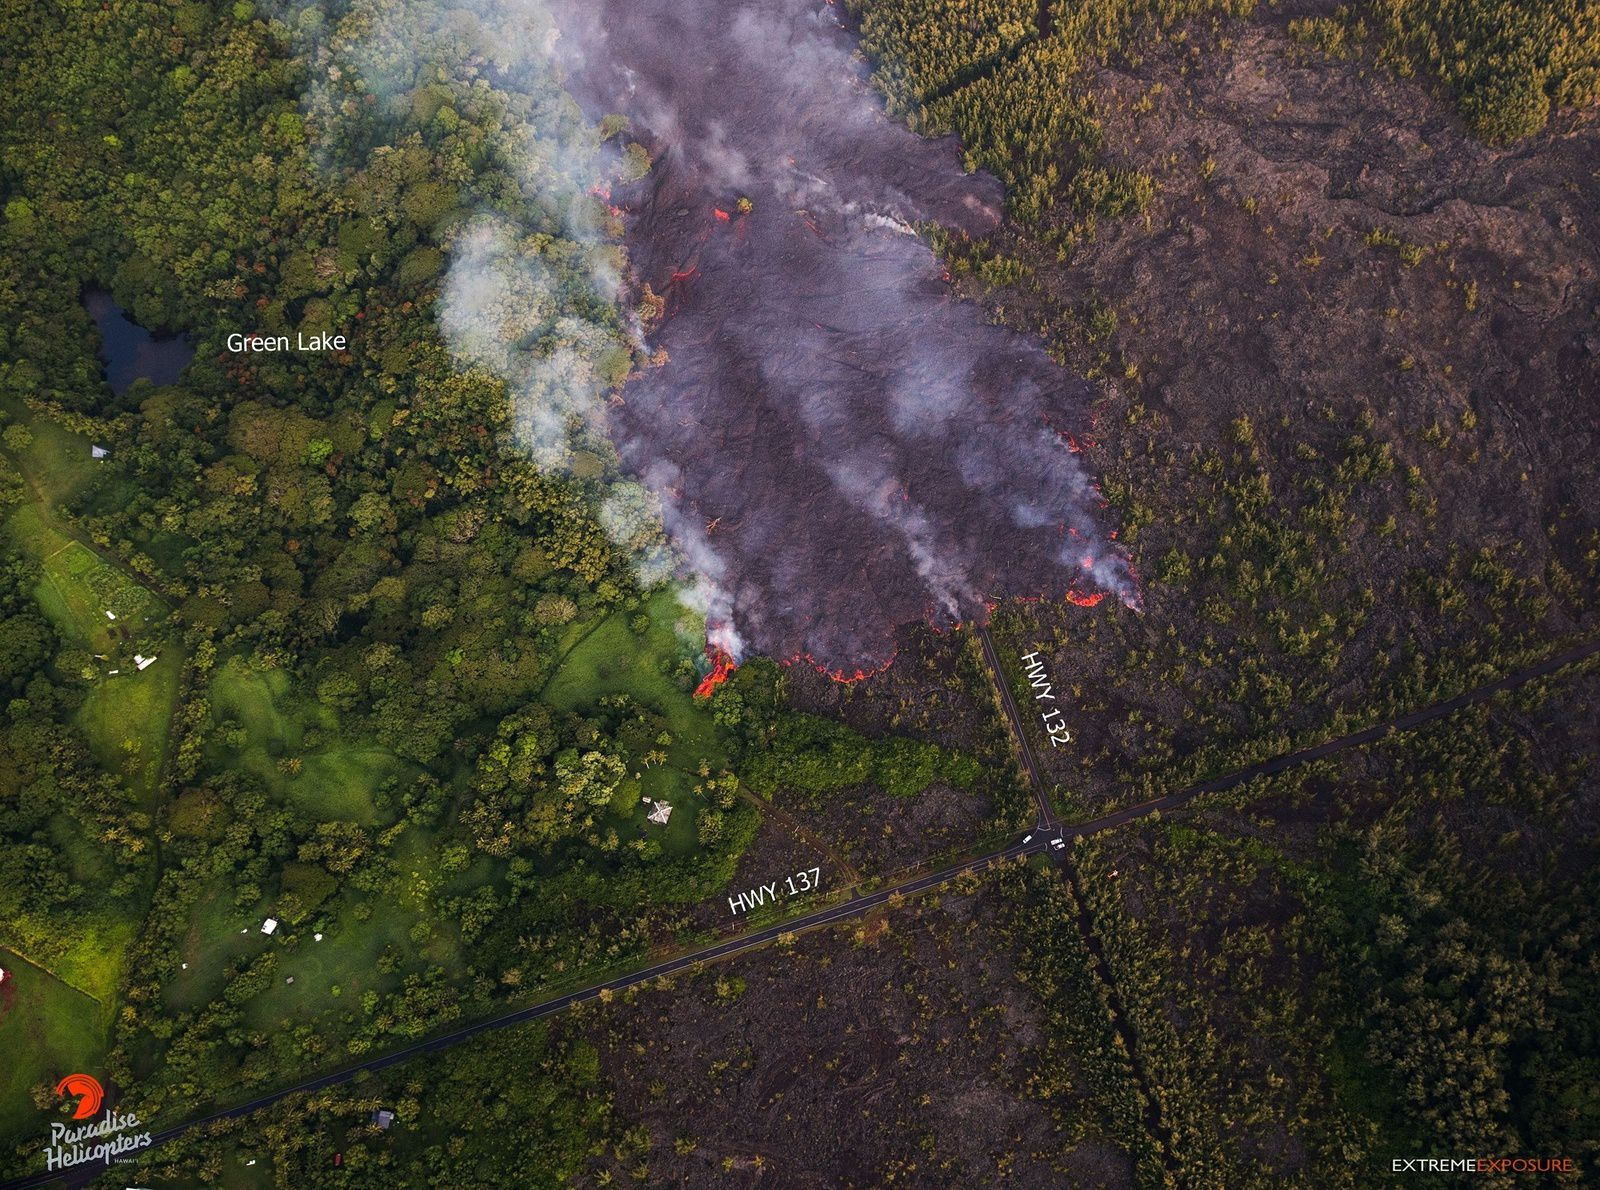 Kilauea East rift zone - the lava flow of crack 8 approaches Four Corners on 02.06.2018 / 5:45 - photo Bruce Omori / Paradise Helicopters